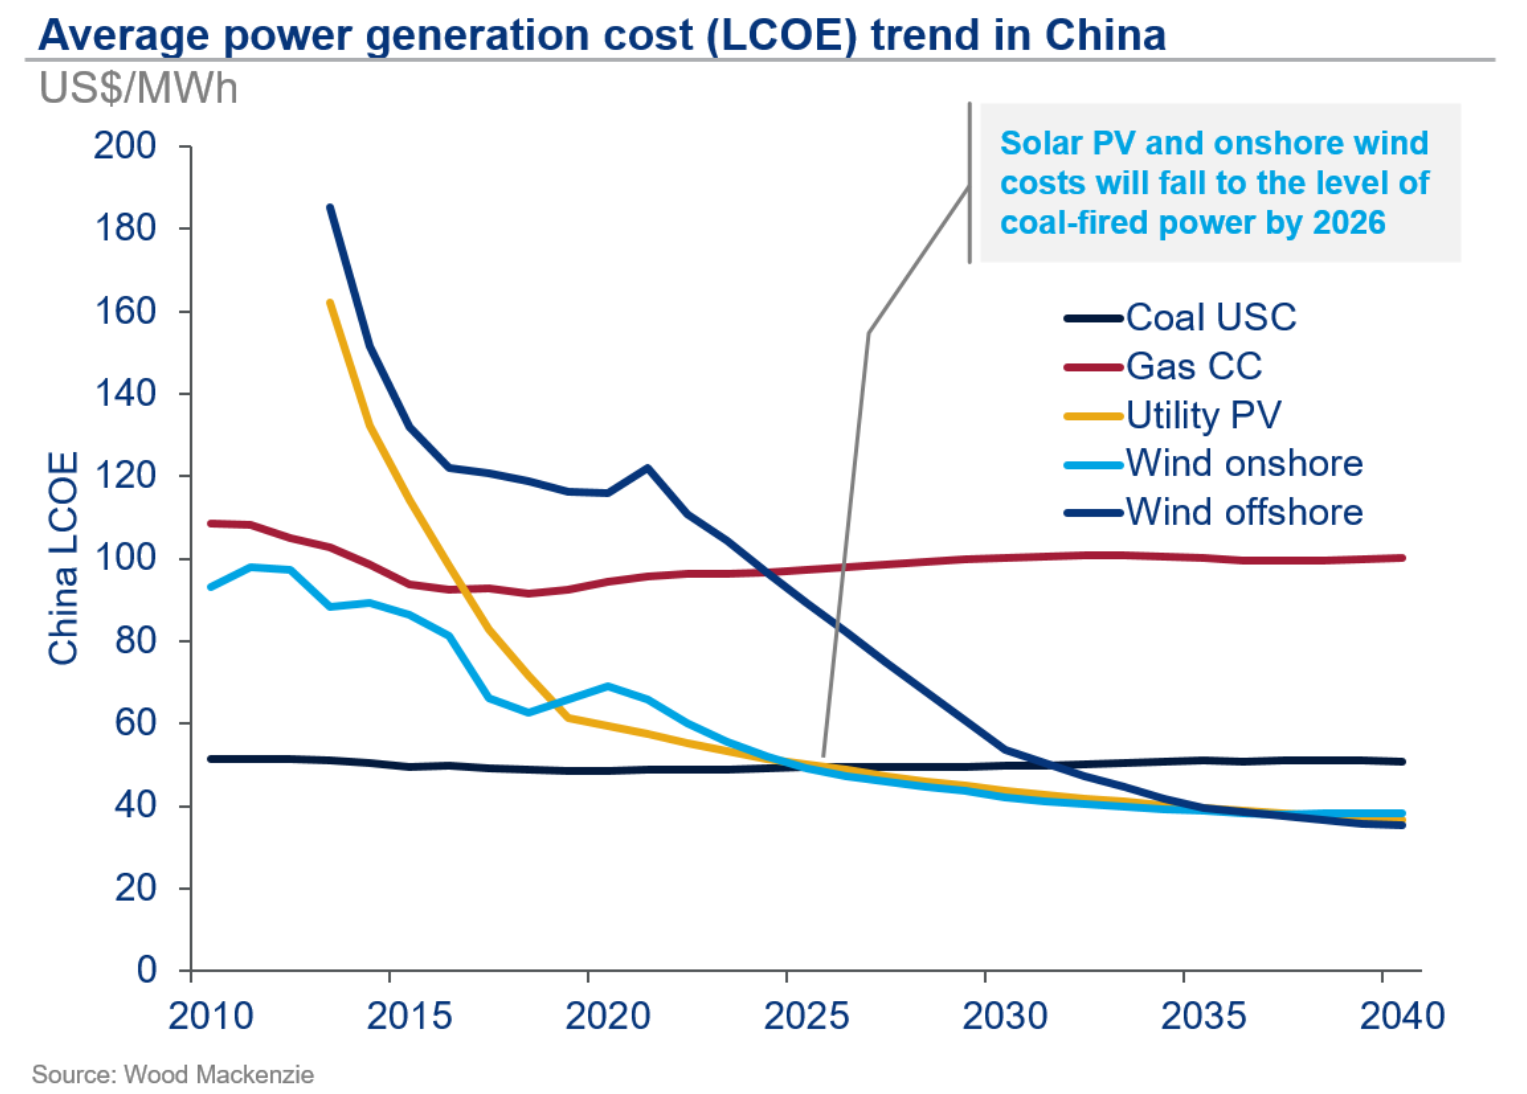 Already Cheaper Than Gas China's Renewables to Undercut Coal by 2026